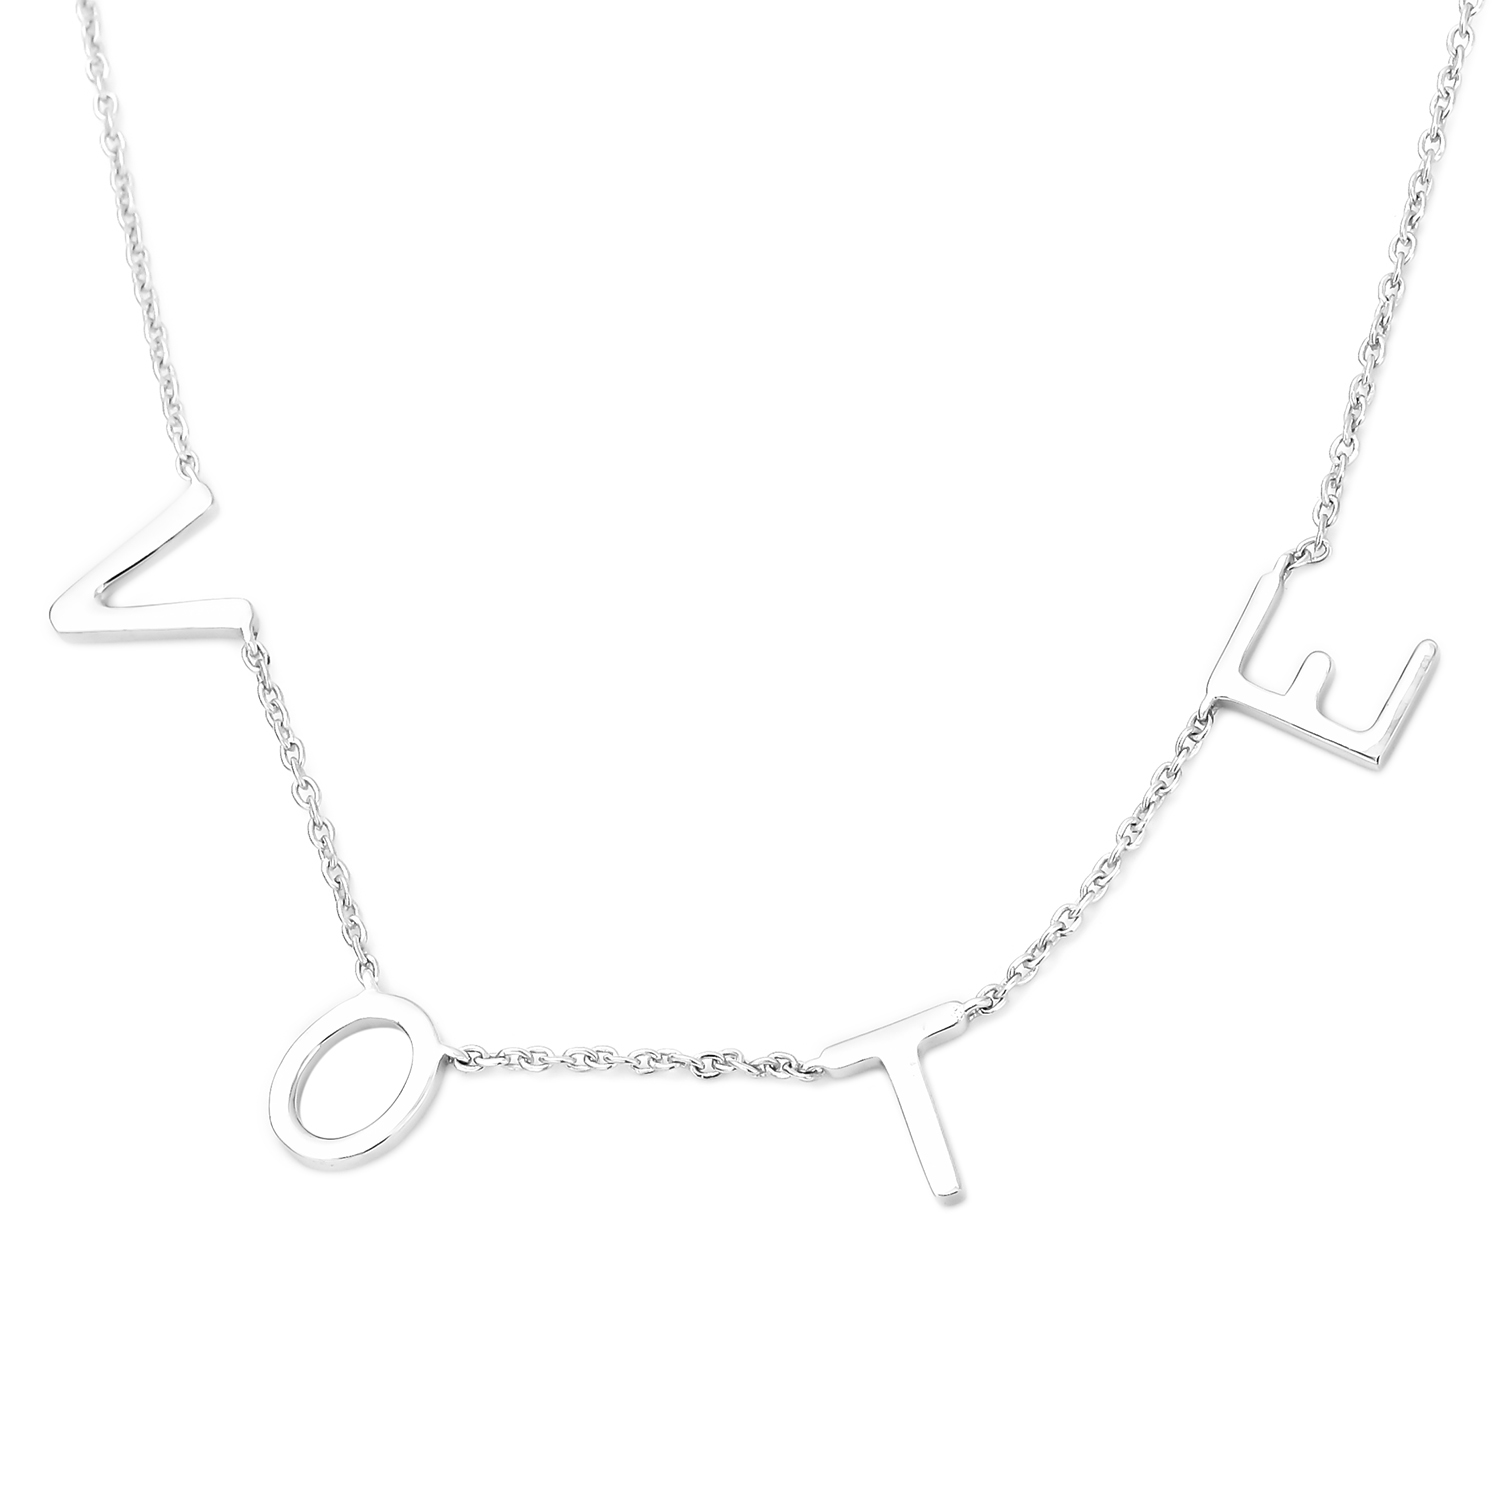 Michelle Obama Vote Necklace Sterling Silver Name Necklace Personalized Spaced Letter Necklace for Women